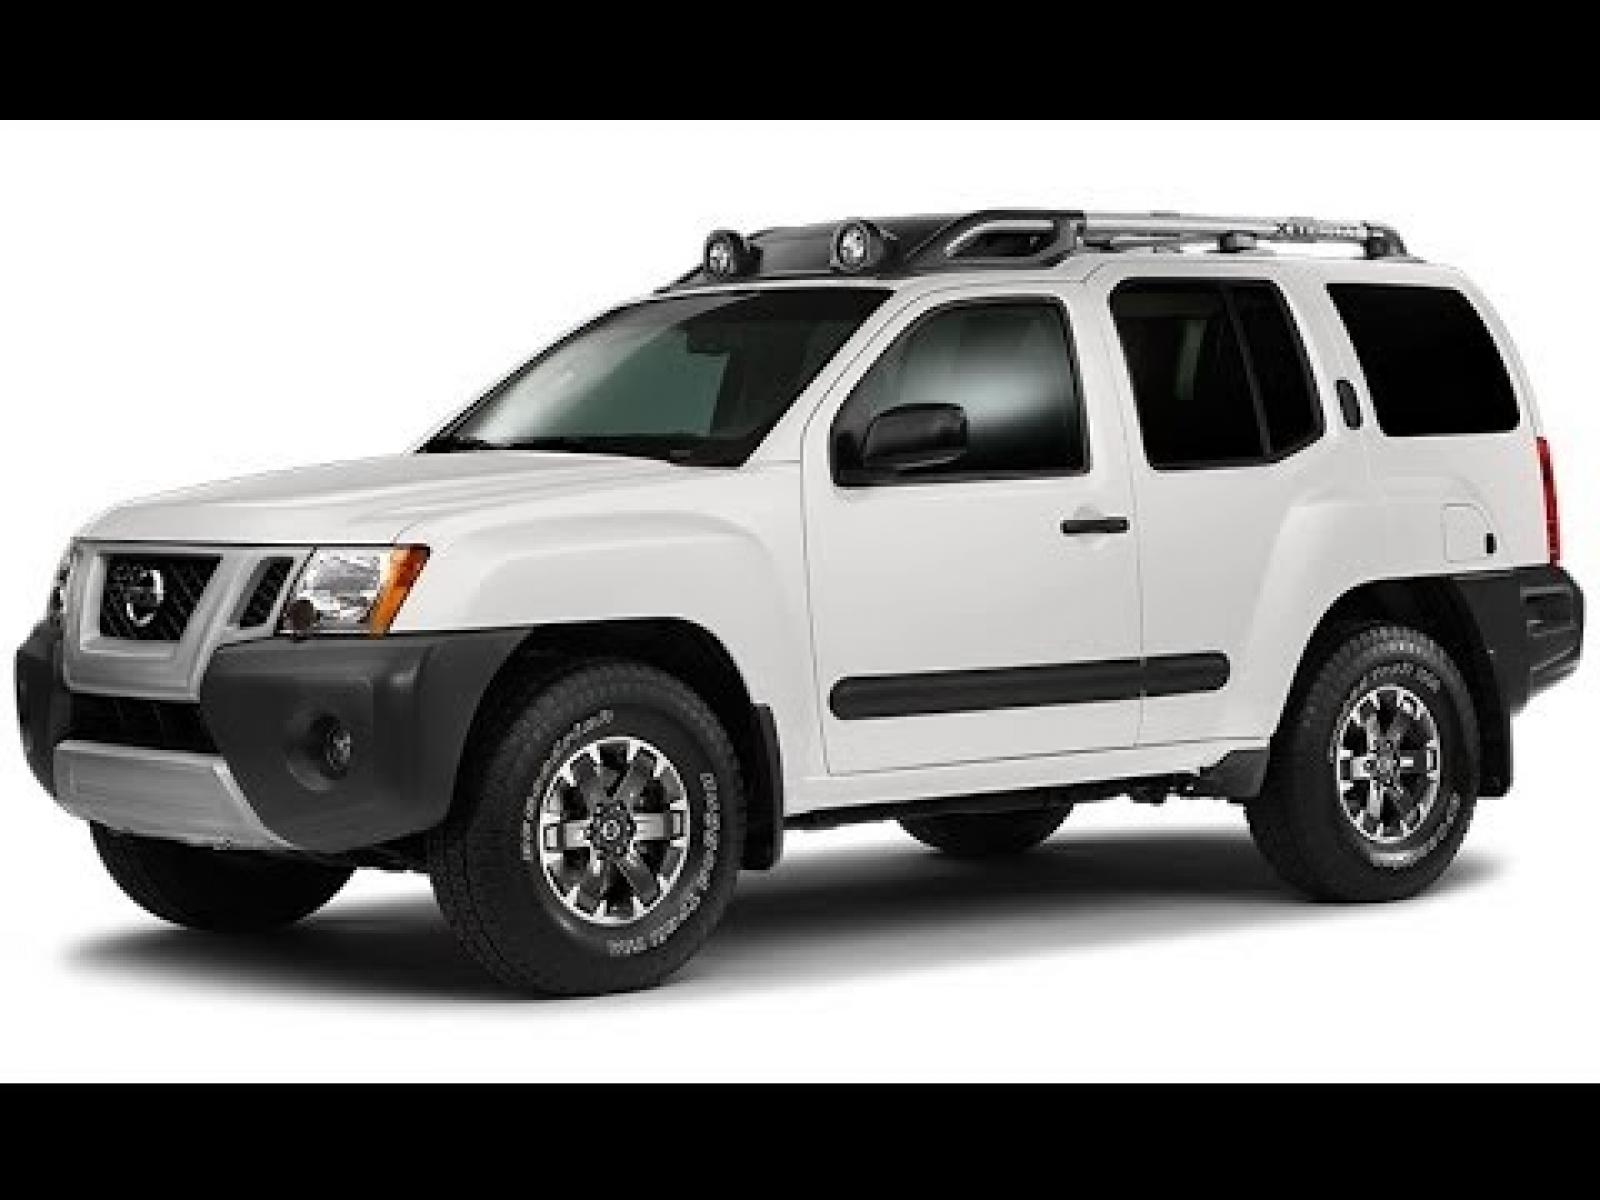 2015 Nissan Xterra Information and photos ZombieDrive